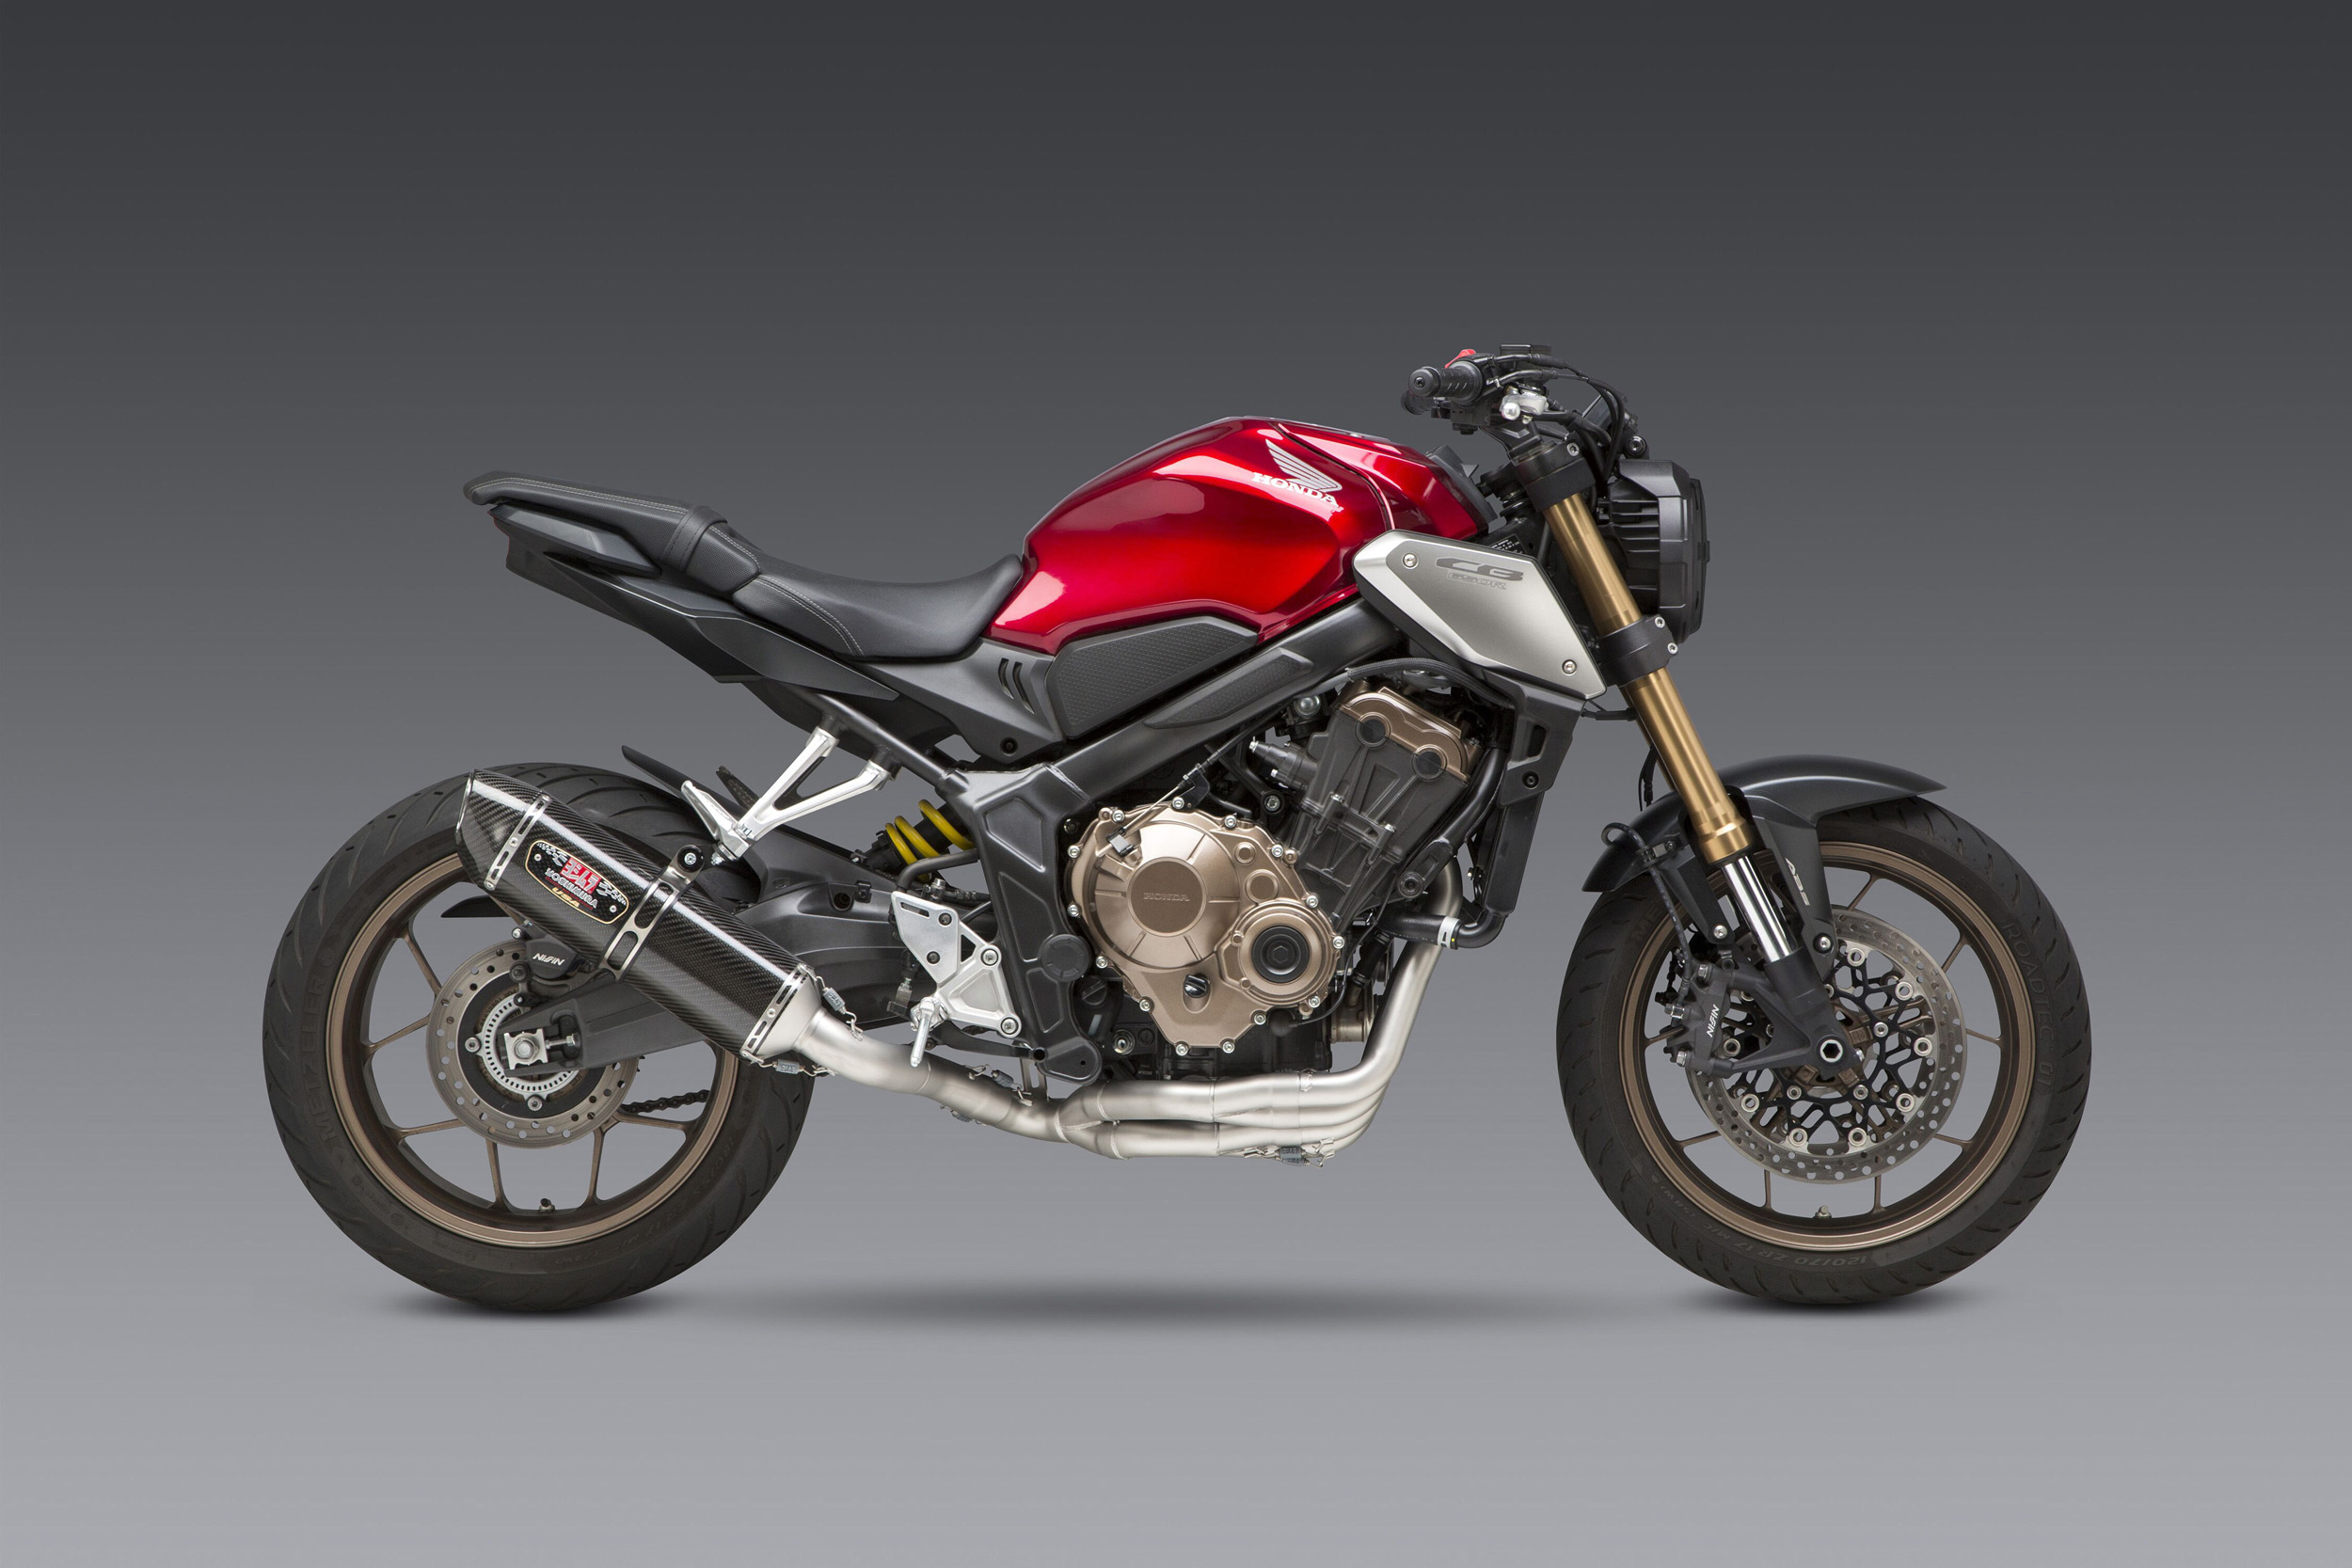 200109 2019 CB650R with carbon fiber R-77 WF Race Series full system